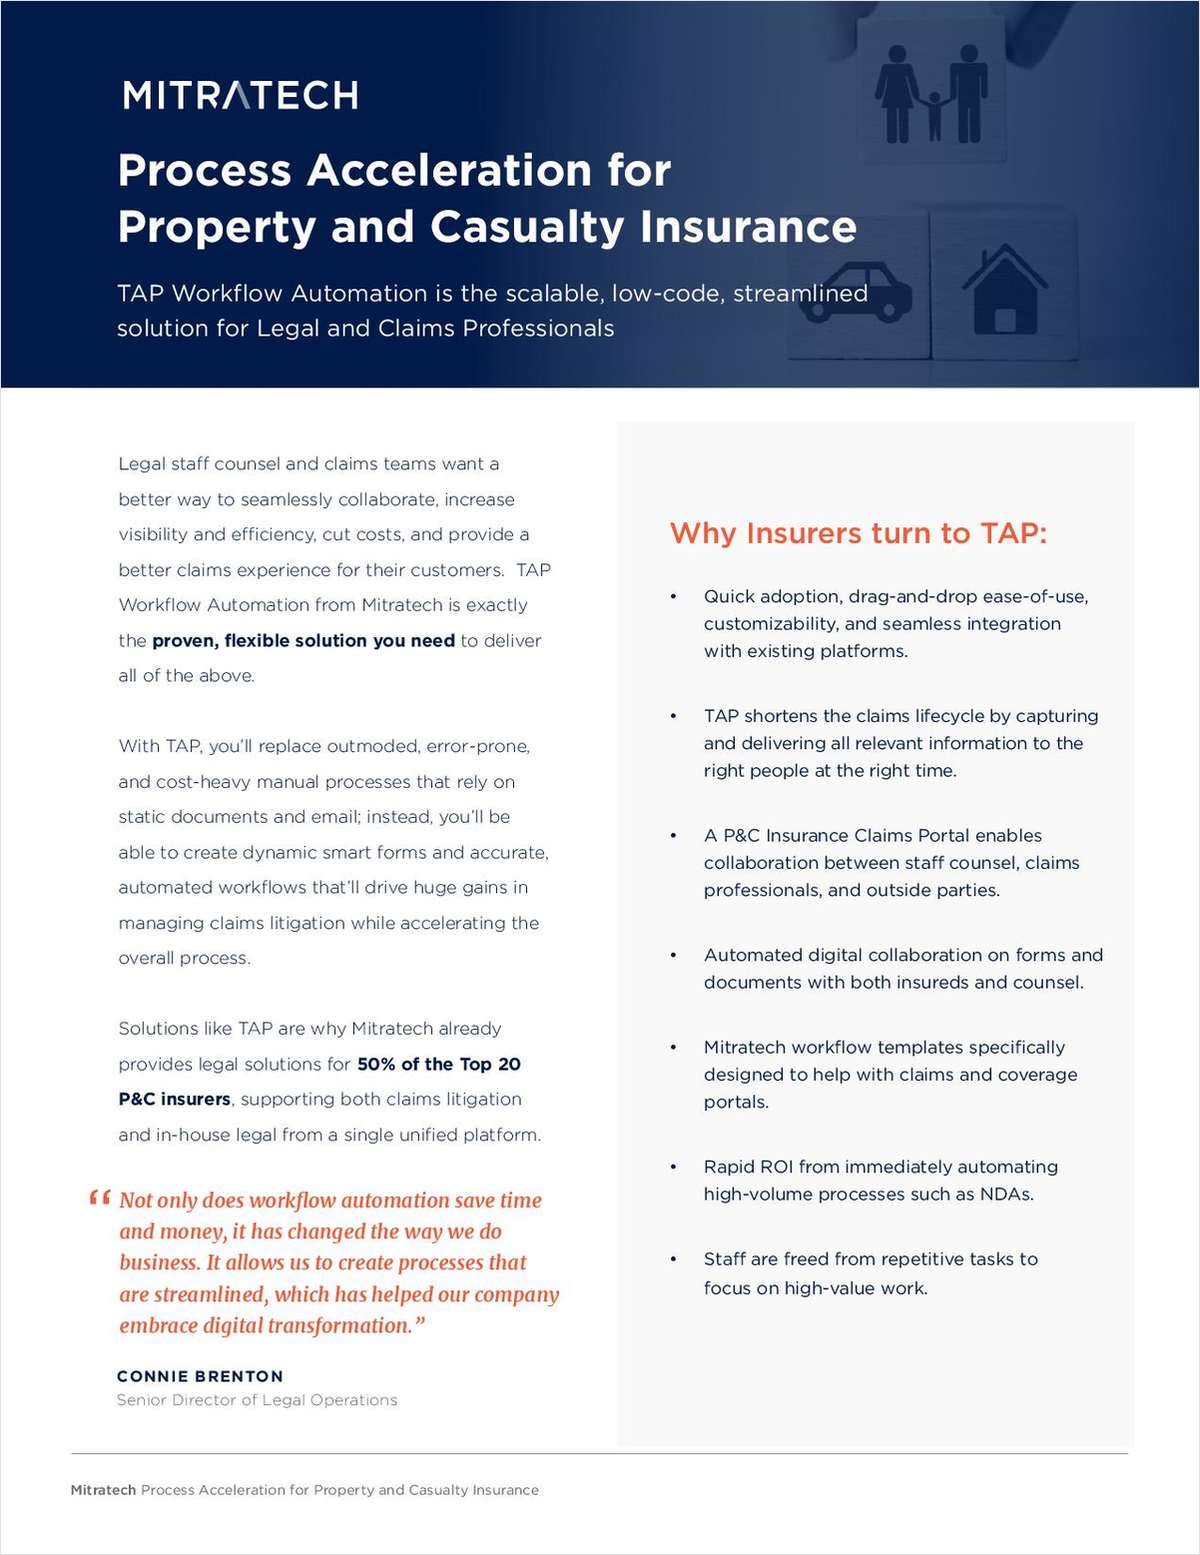 Process Acceleration for Property and Casualty Insurance